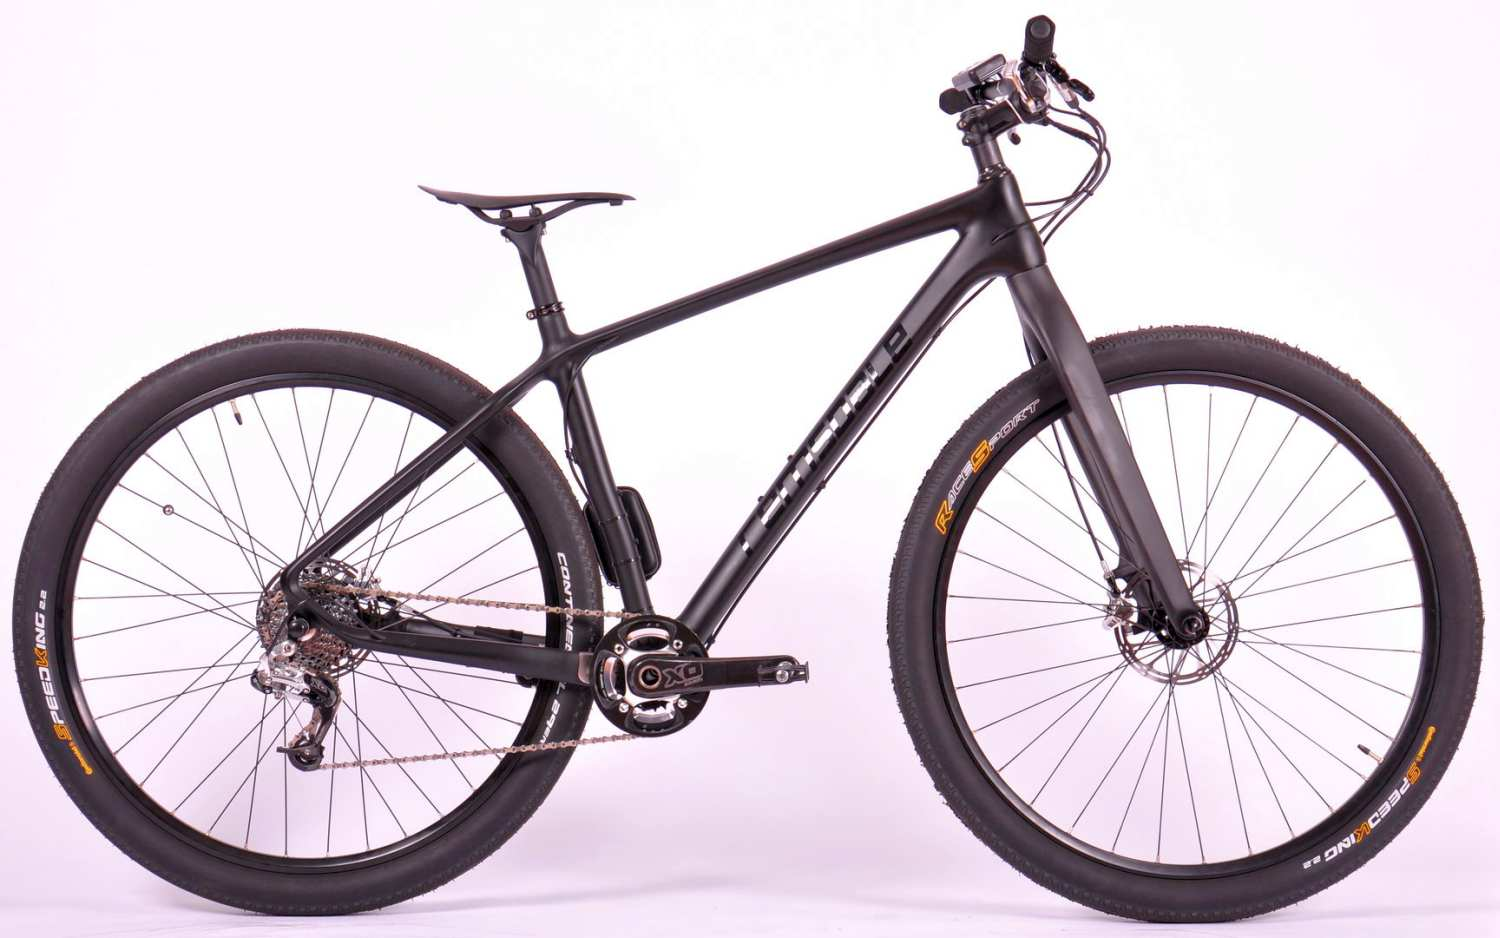 remsdale_11_9_carbon_ebike_2016